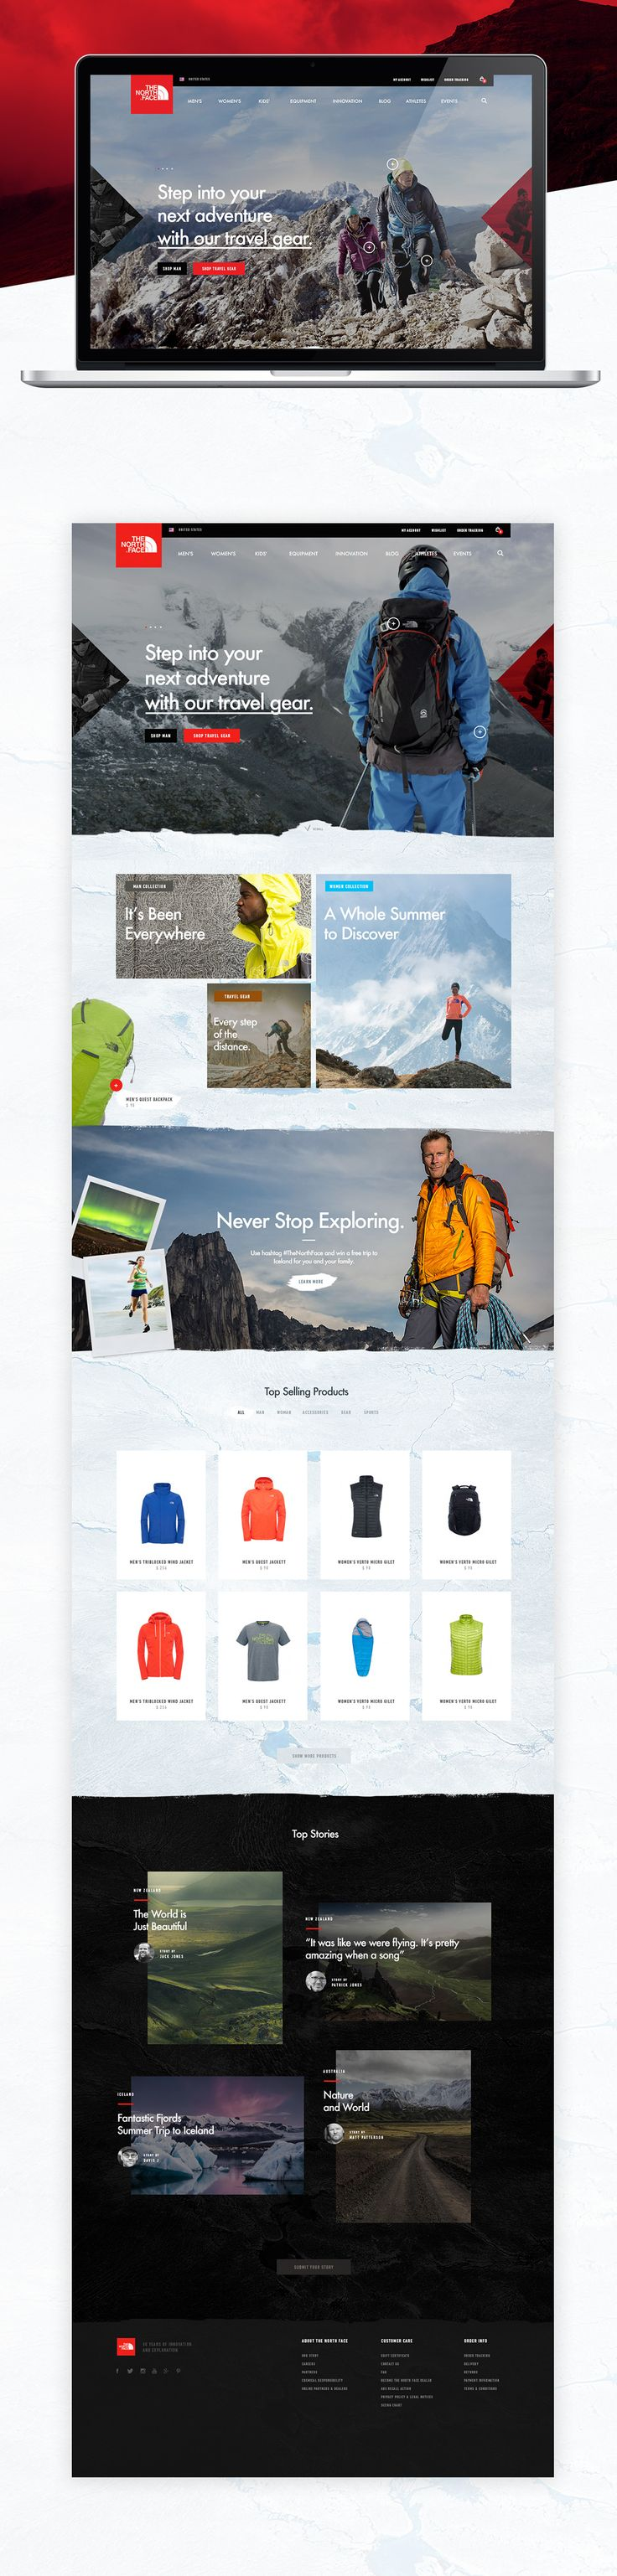 Interactive WebGL experience and e-commerce website design pitch for The North Face company. Made in late 2015.